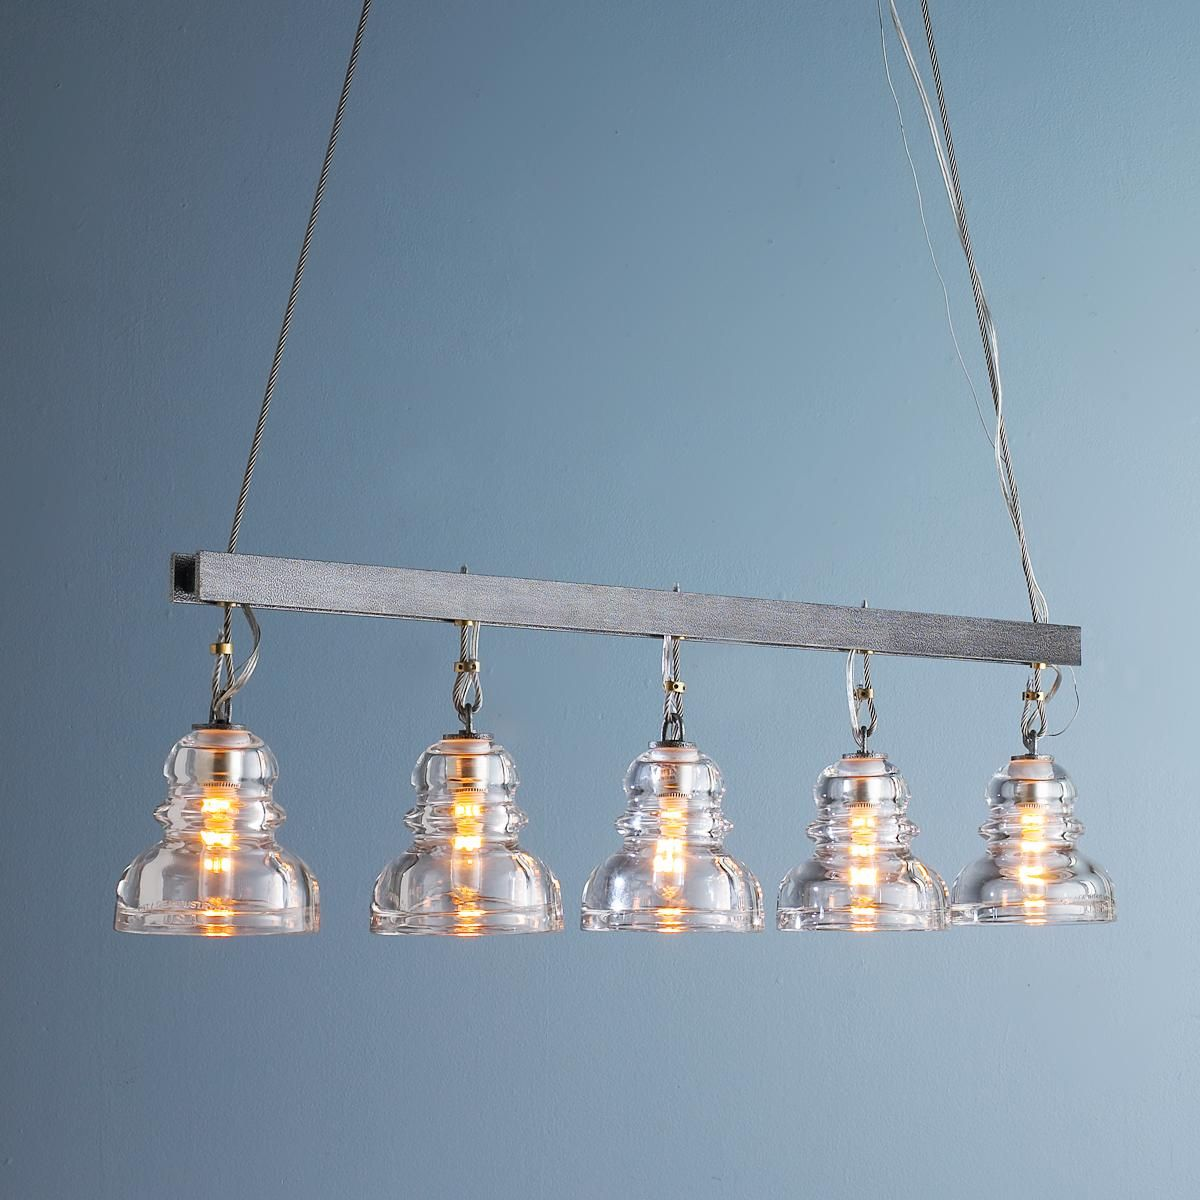 Reproduction Insulator Glass Island Chandelier | Island kitchen ...